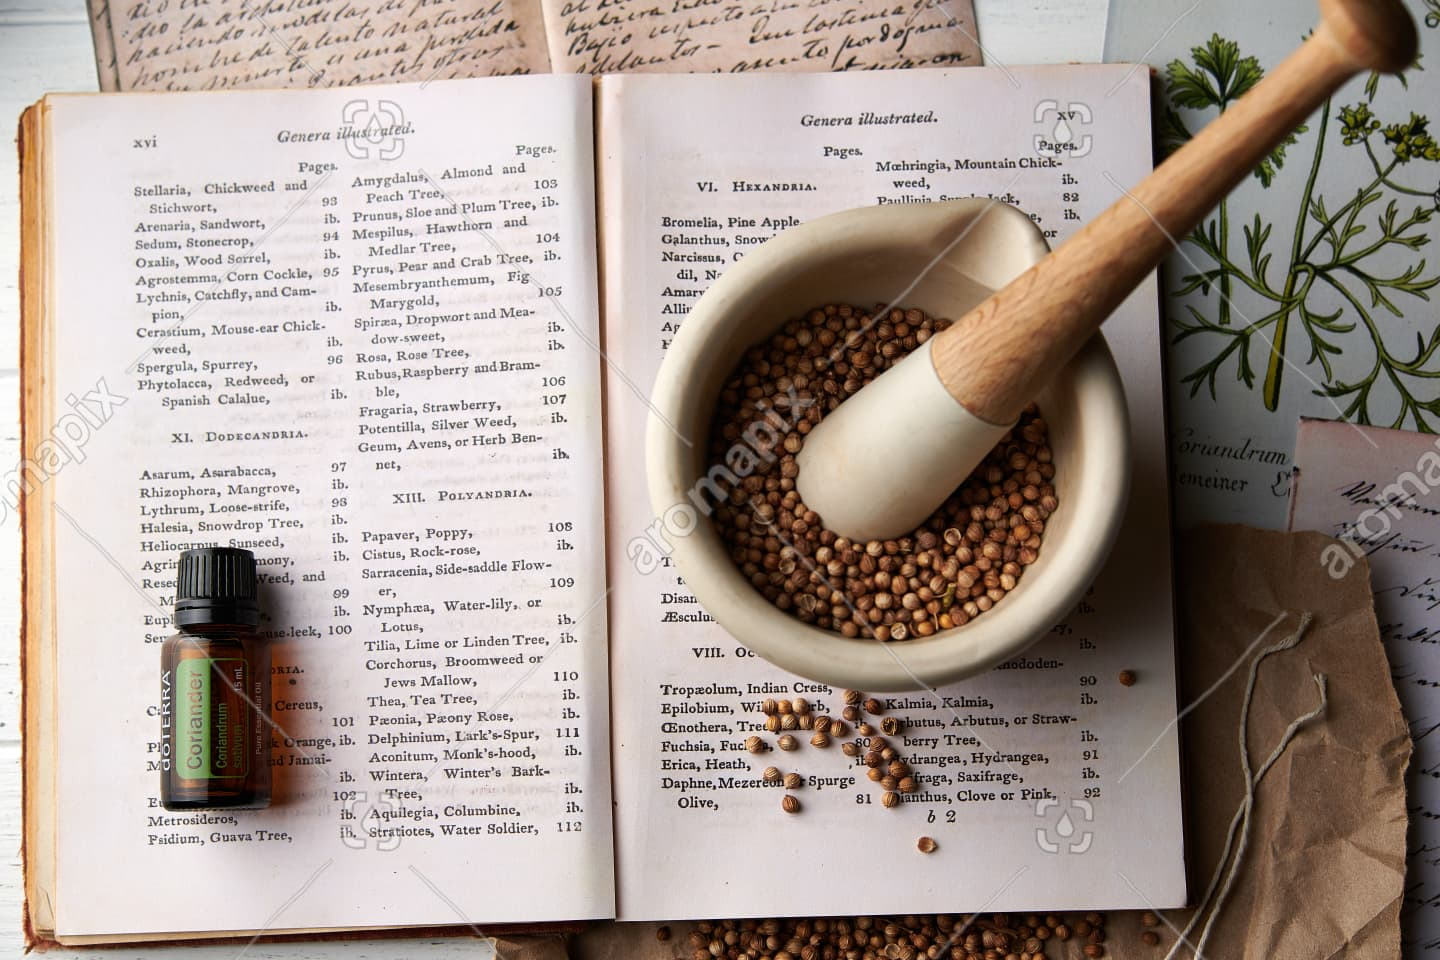 doTERRA Coriander with dried coriander seeds in mortar and pestle